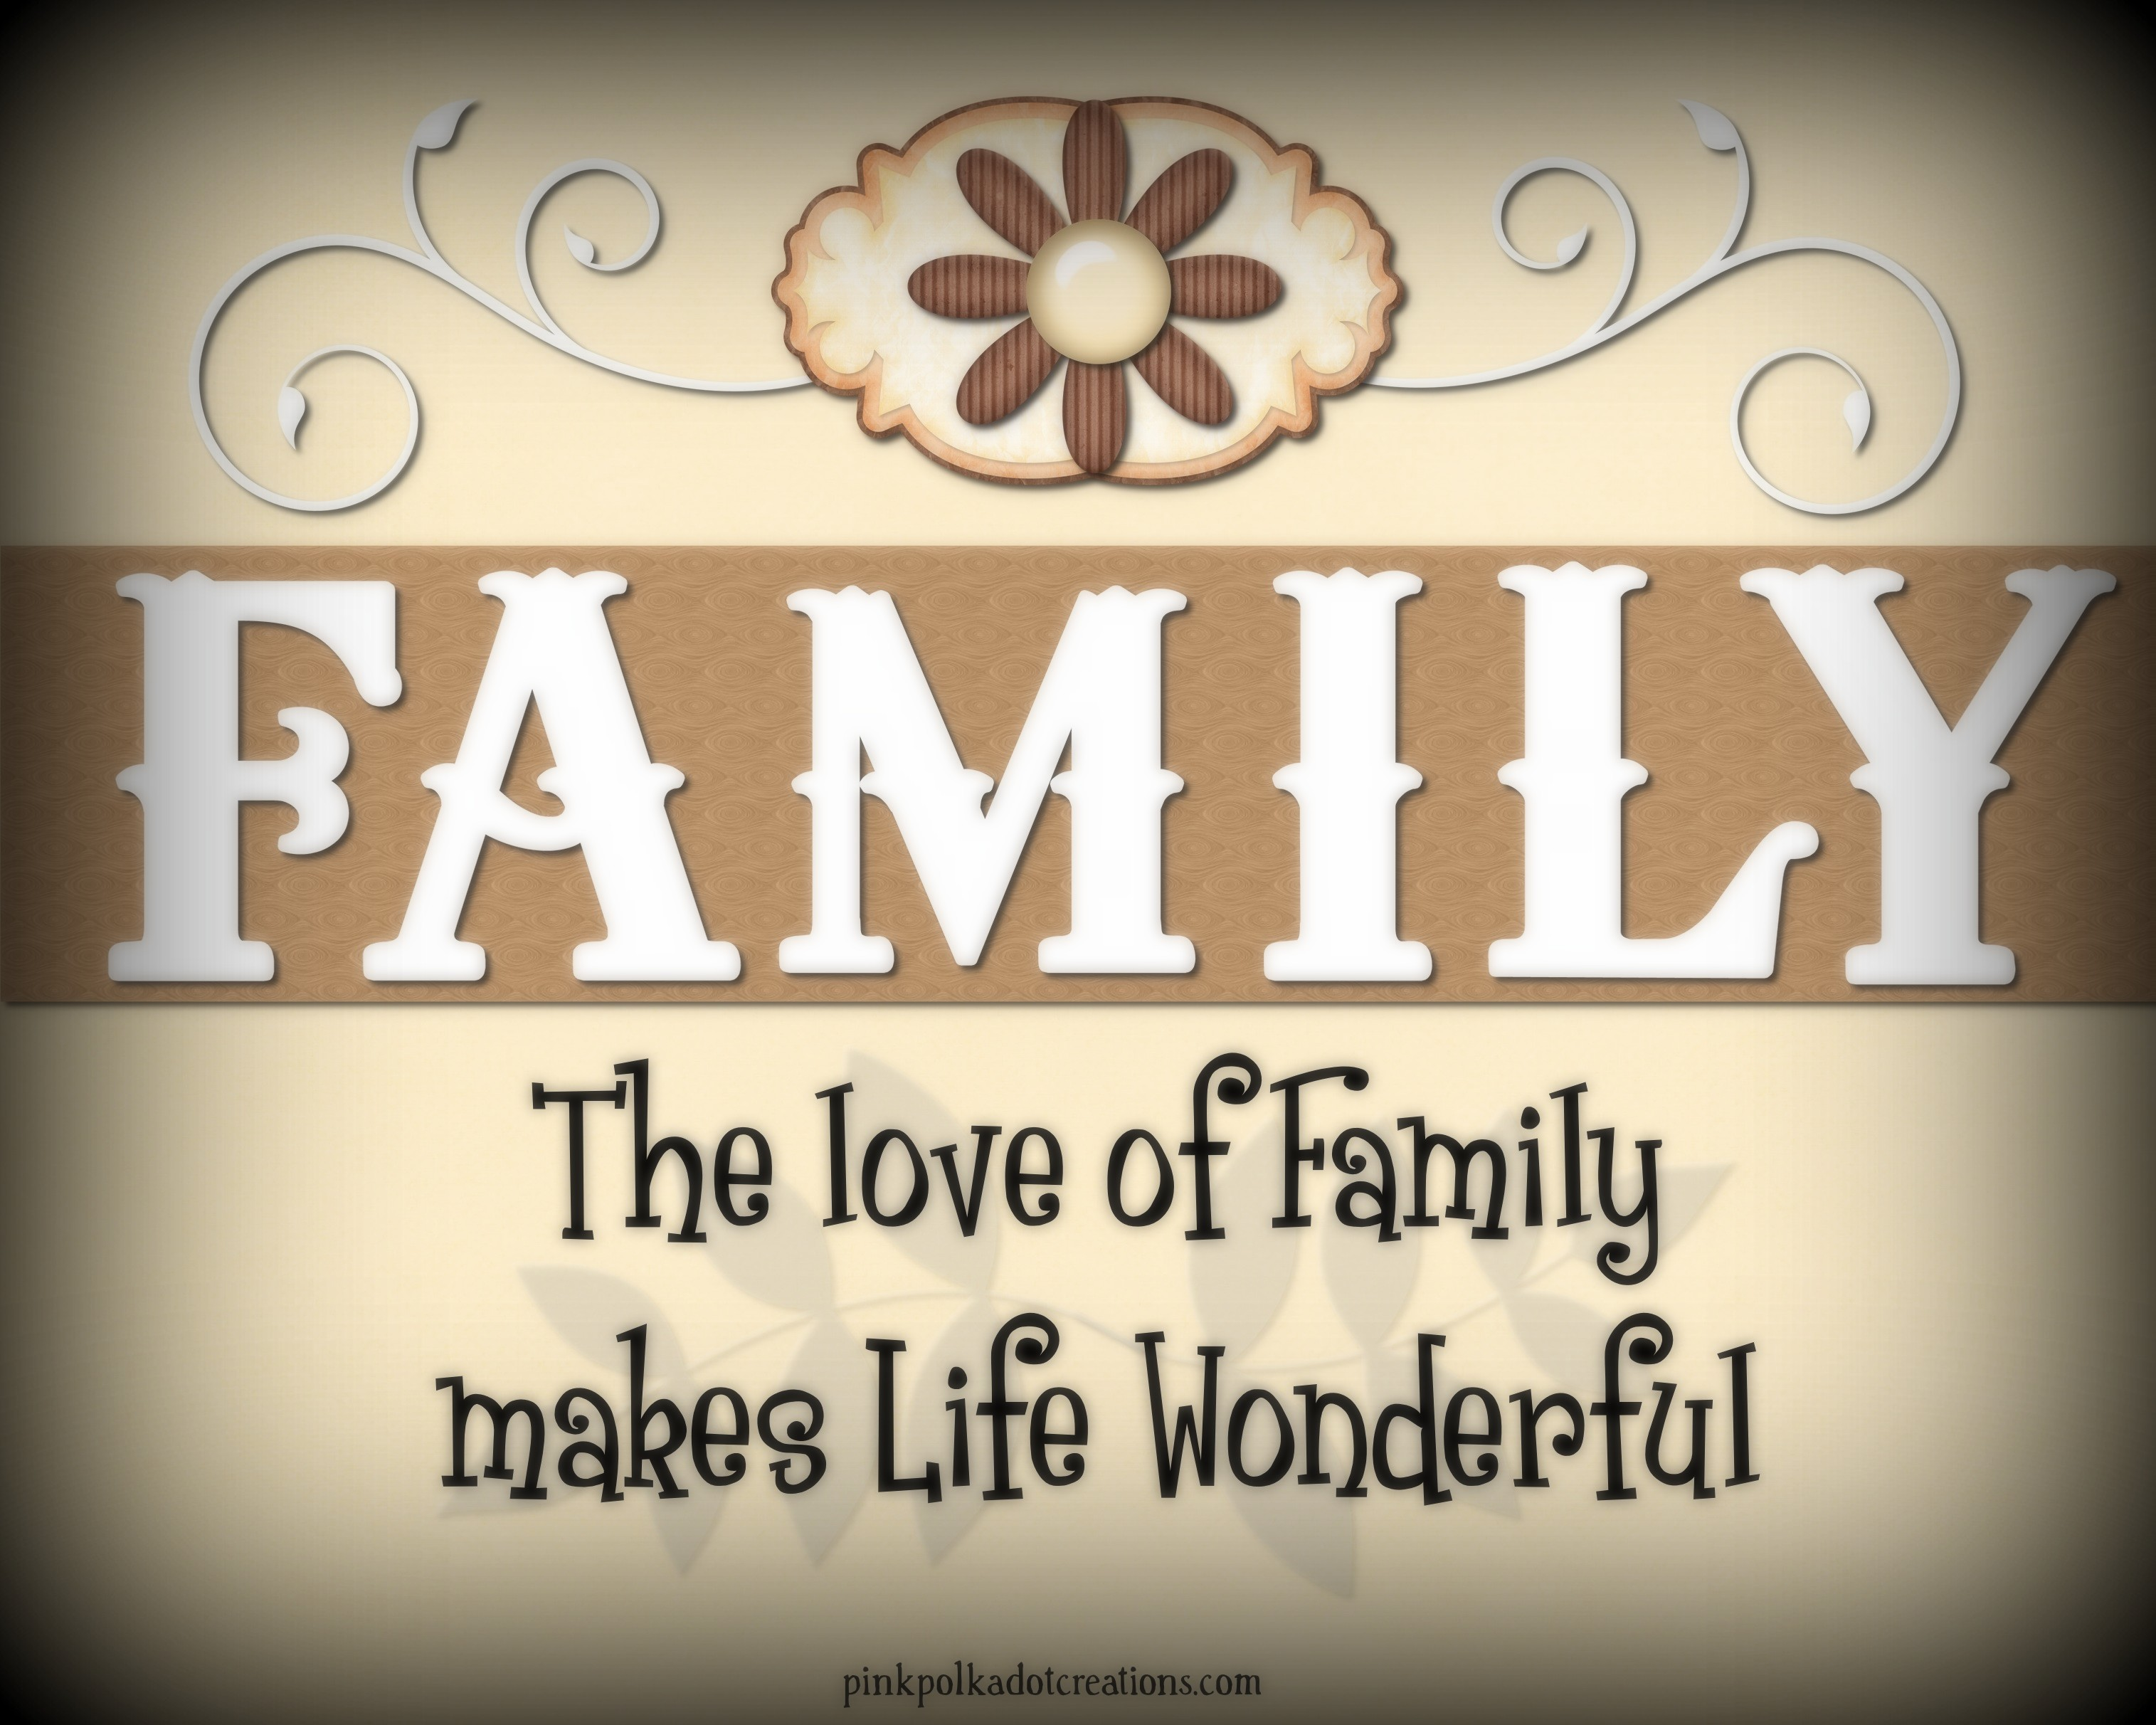 Good Love Quotes Good Love Quotes For Family The Best Quotes About Family Curated.